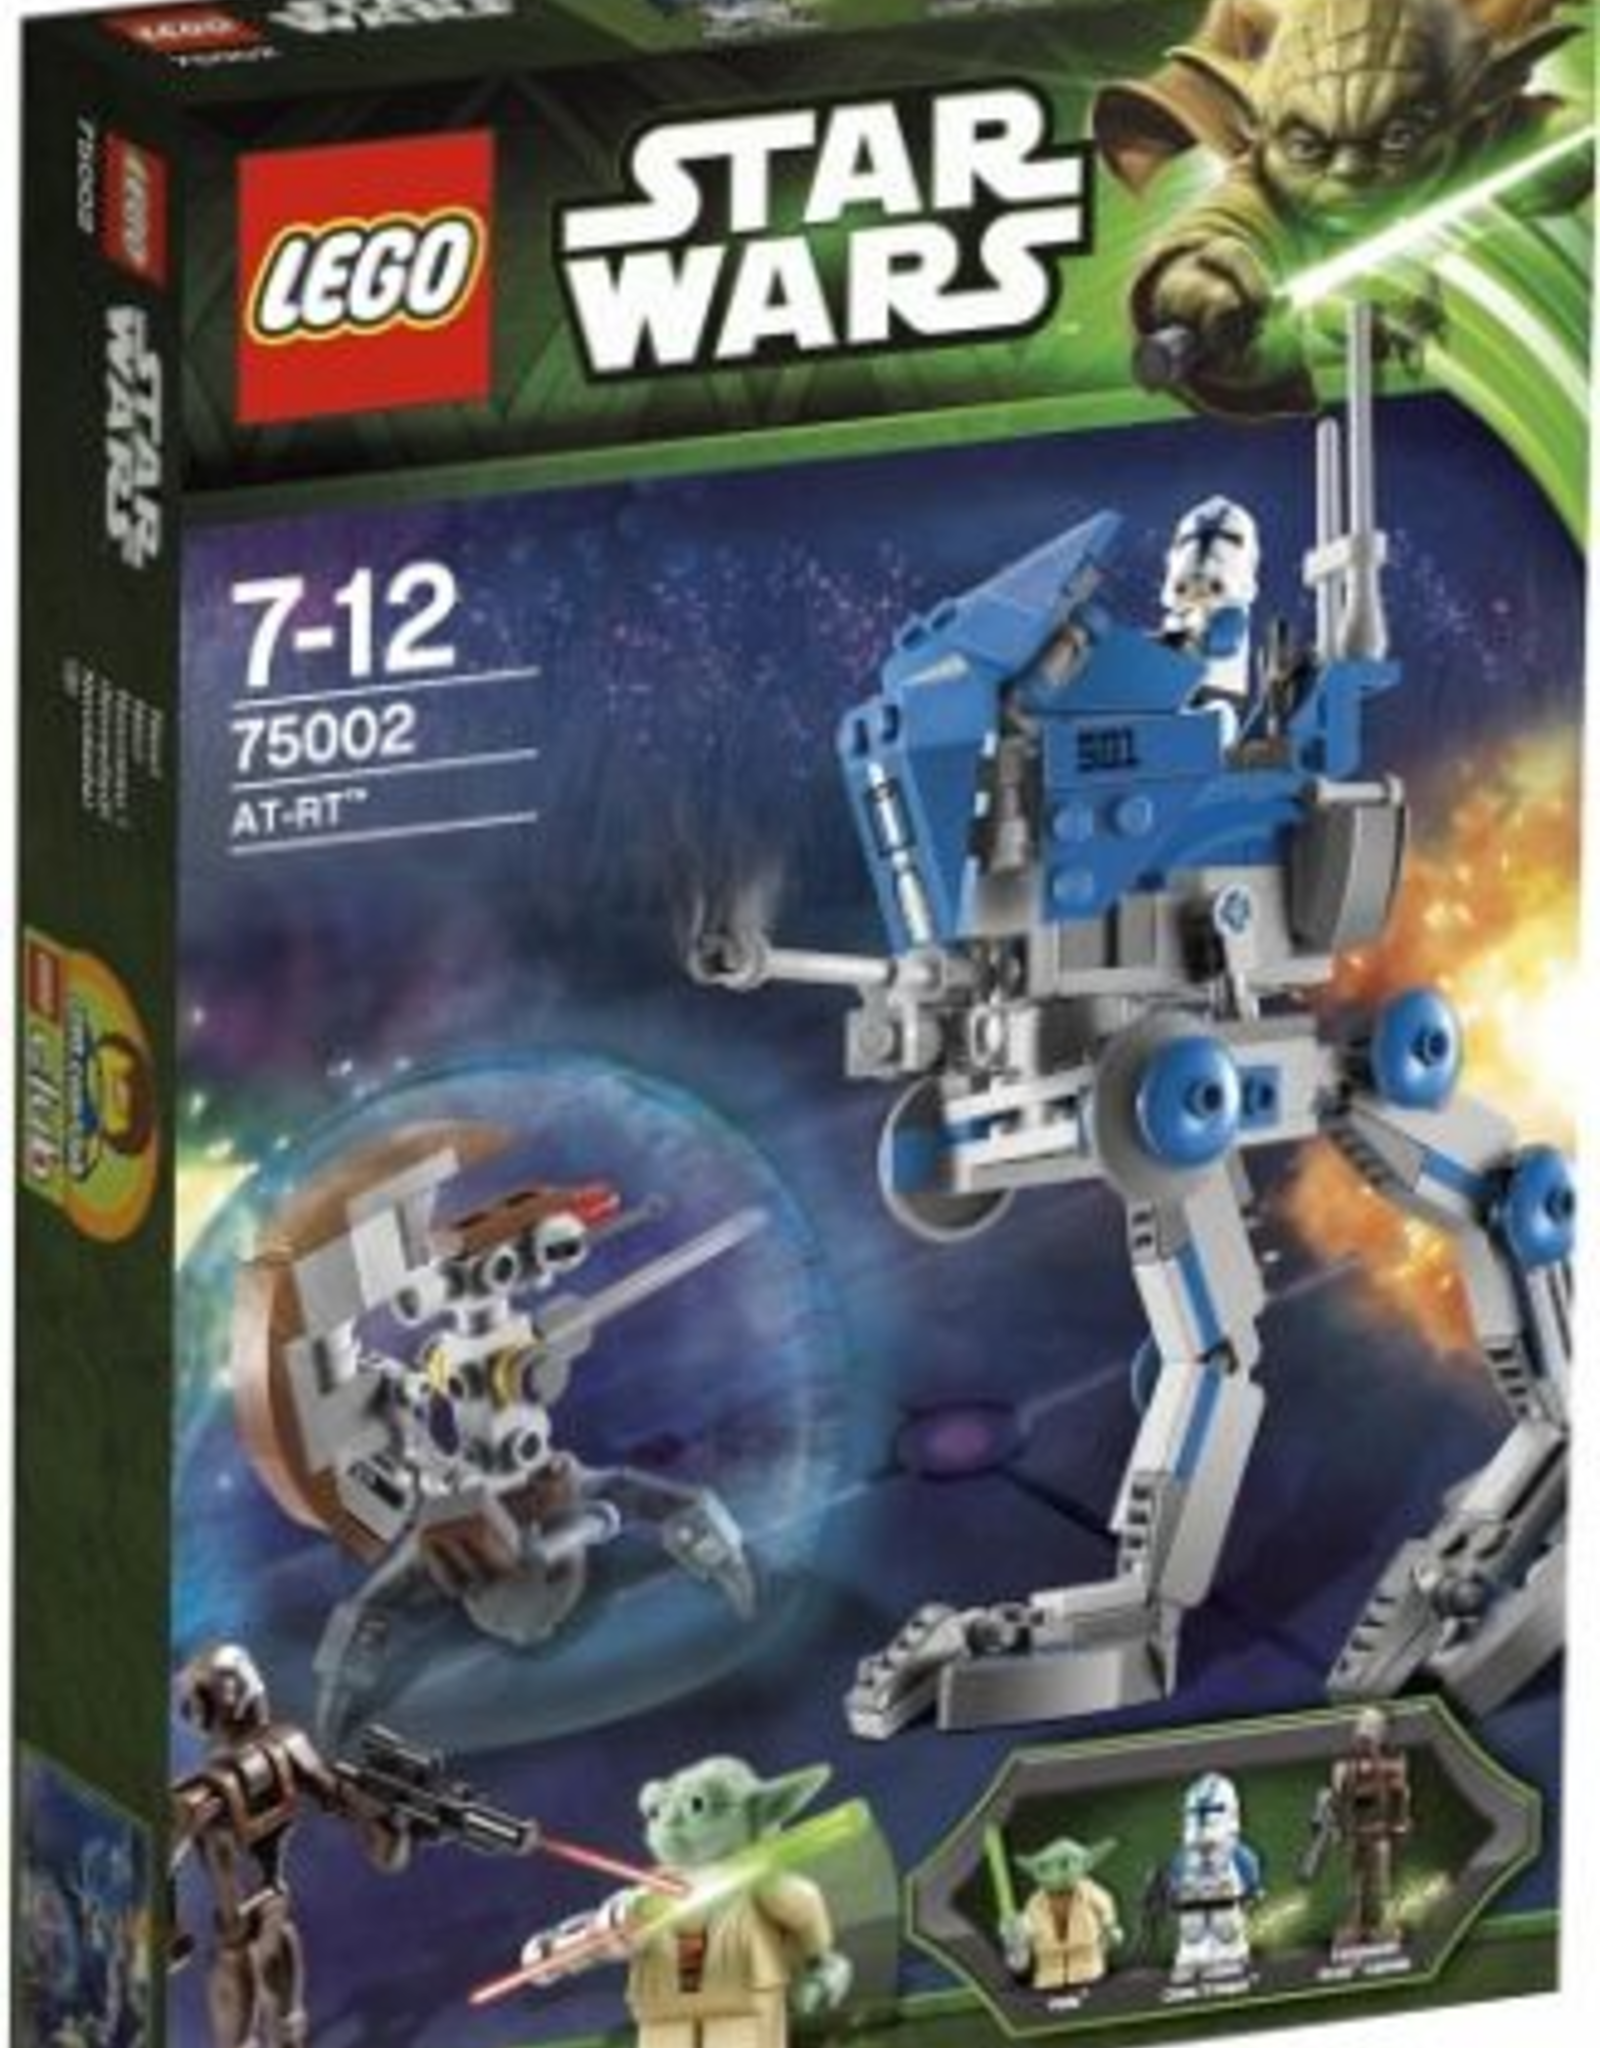 LEGO LEGO 75002 AT-RT STAR WARS